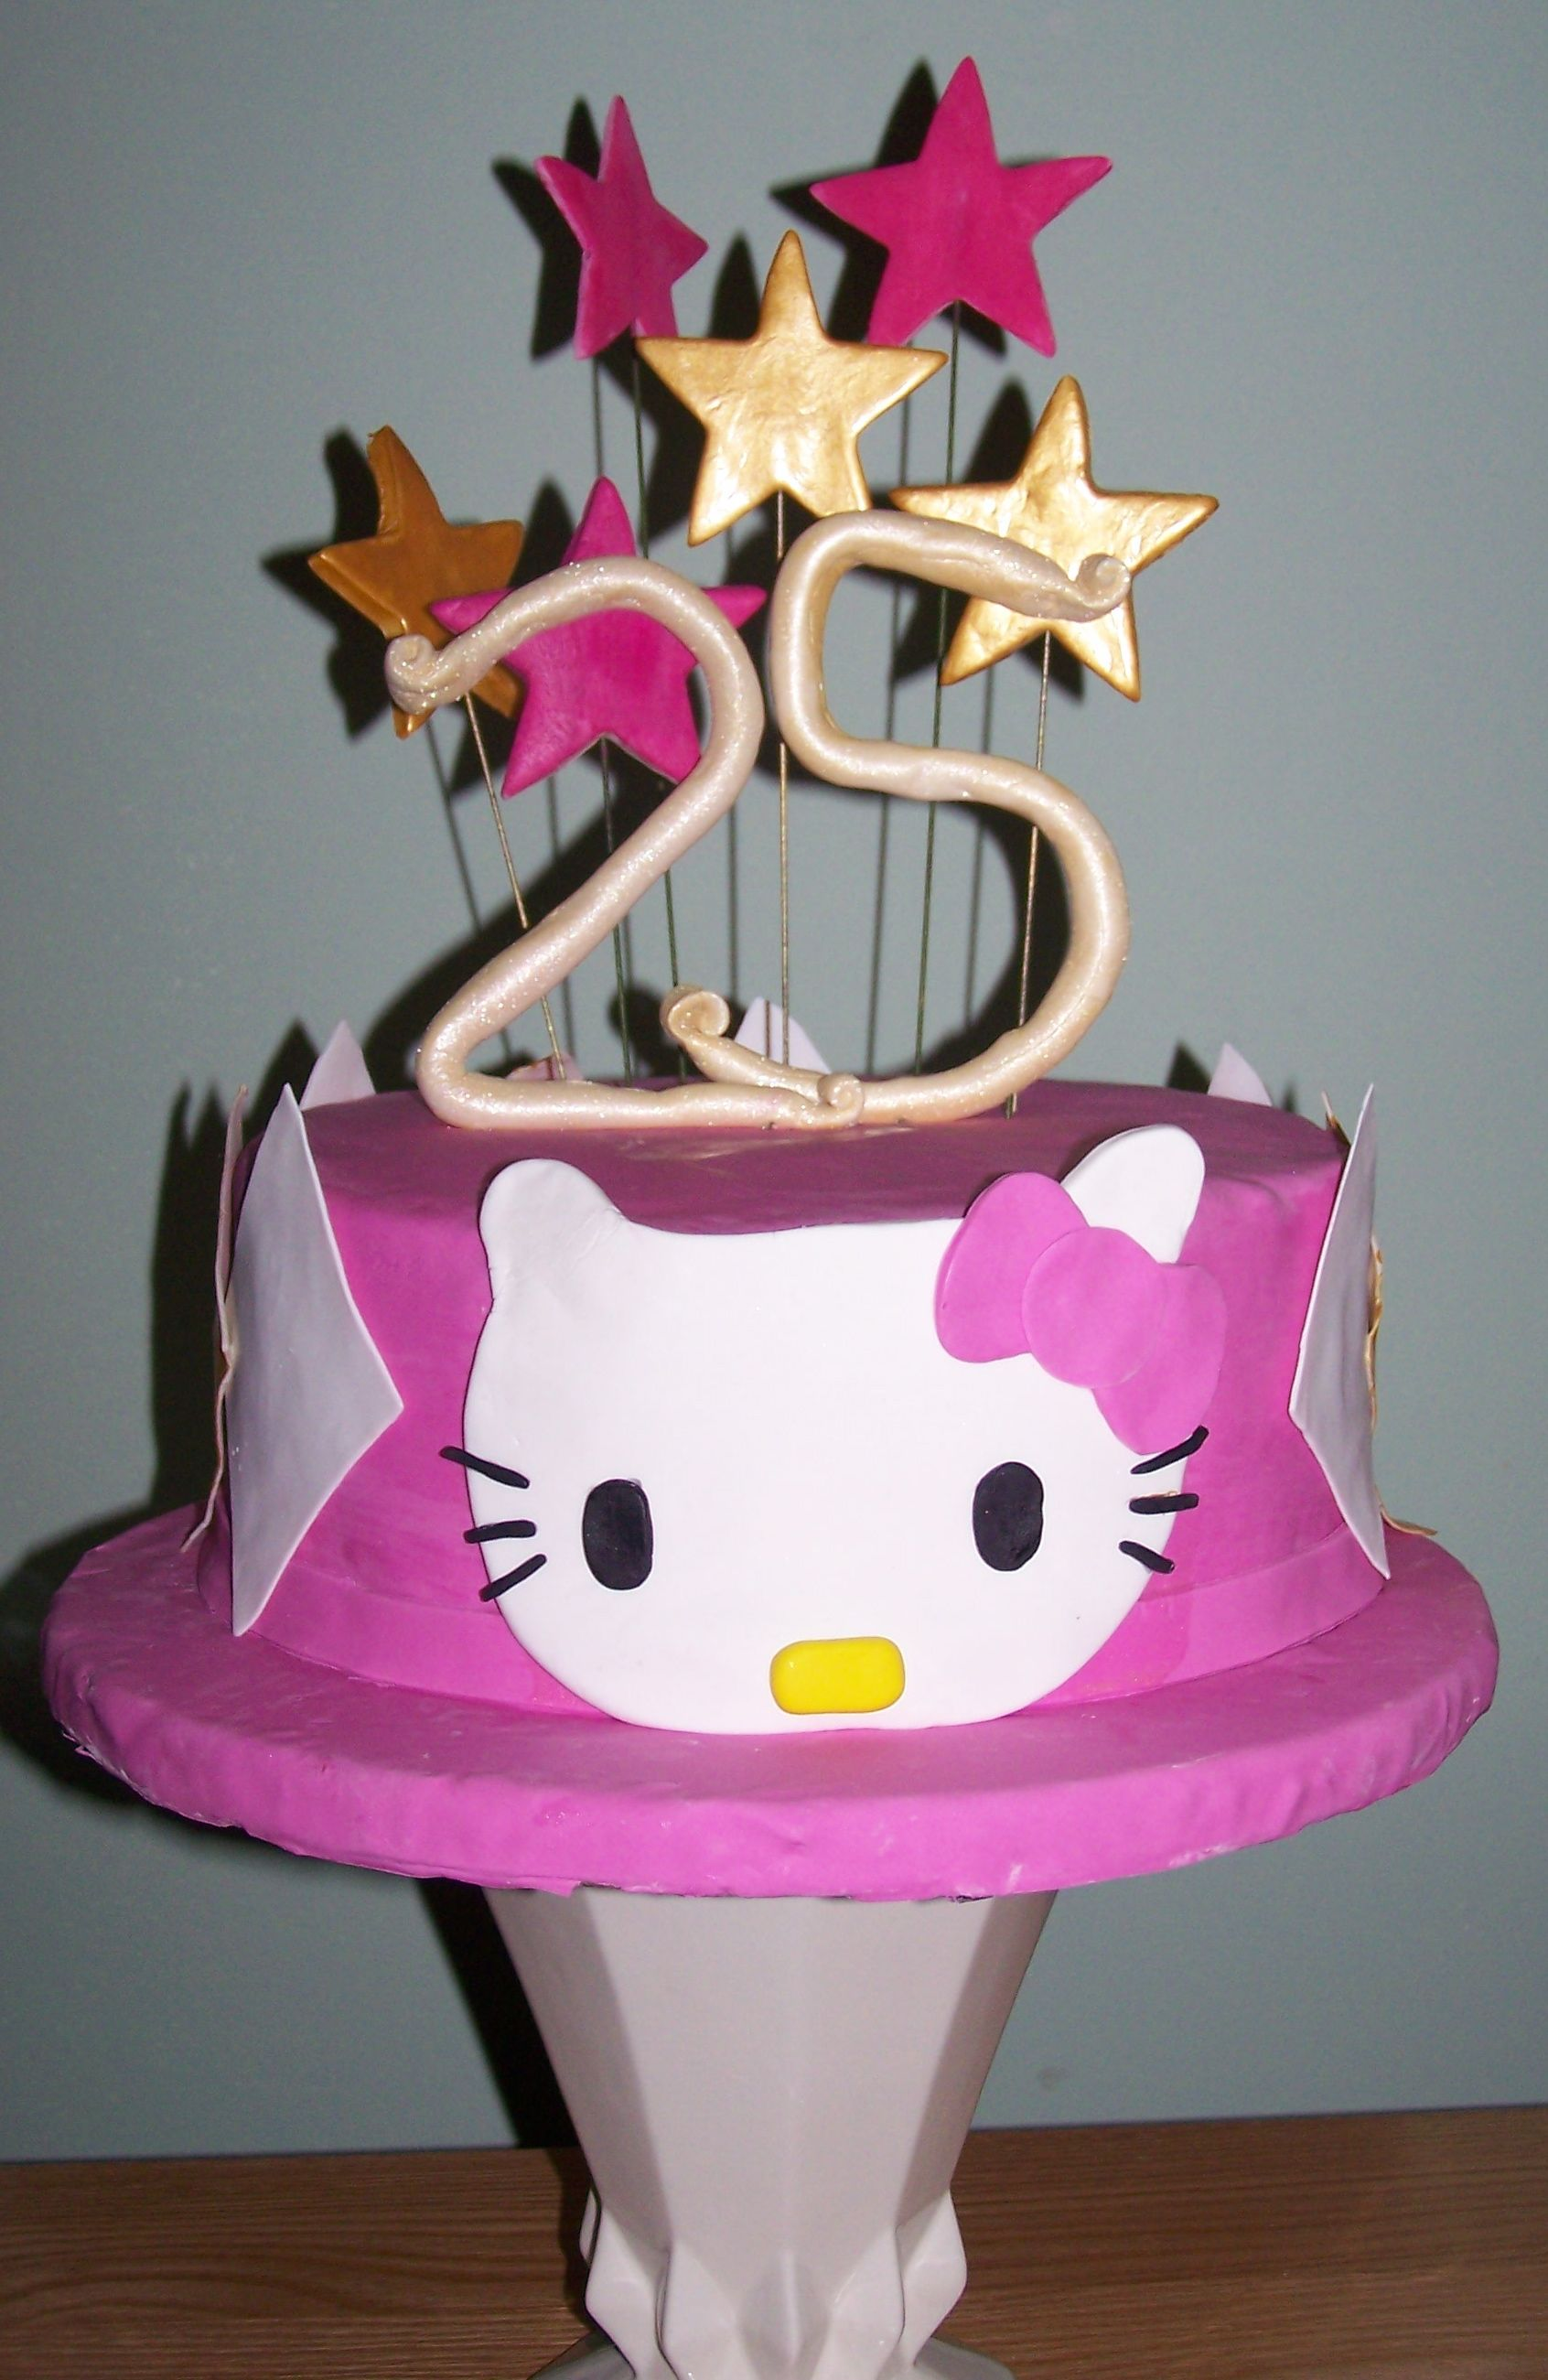 Happy Birthday Pictures Cakes Wishes 25 Years Old